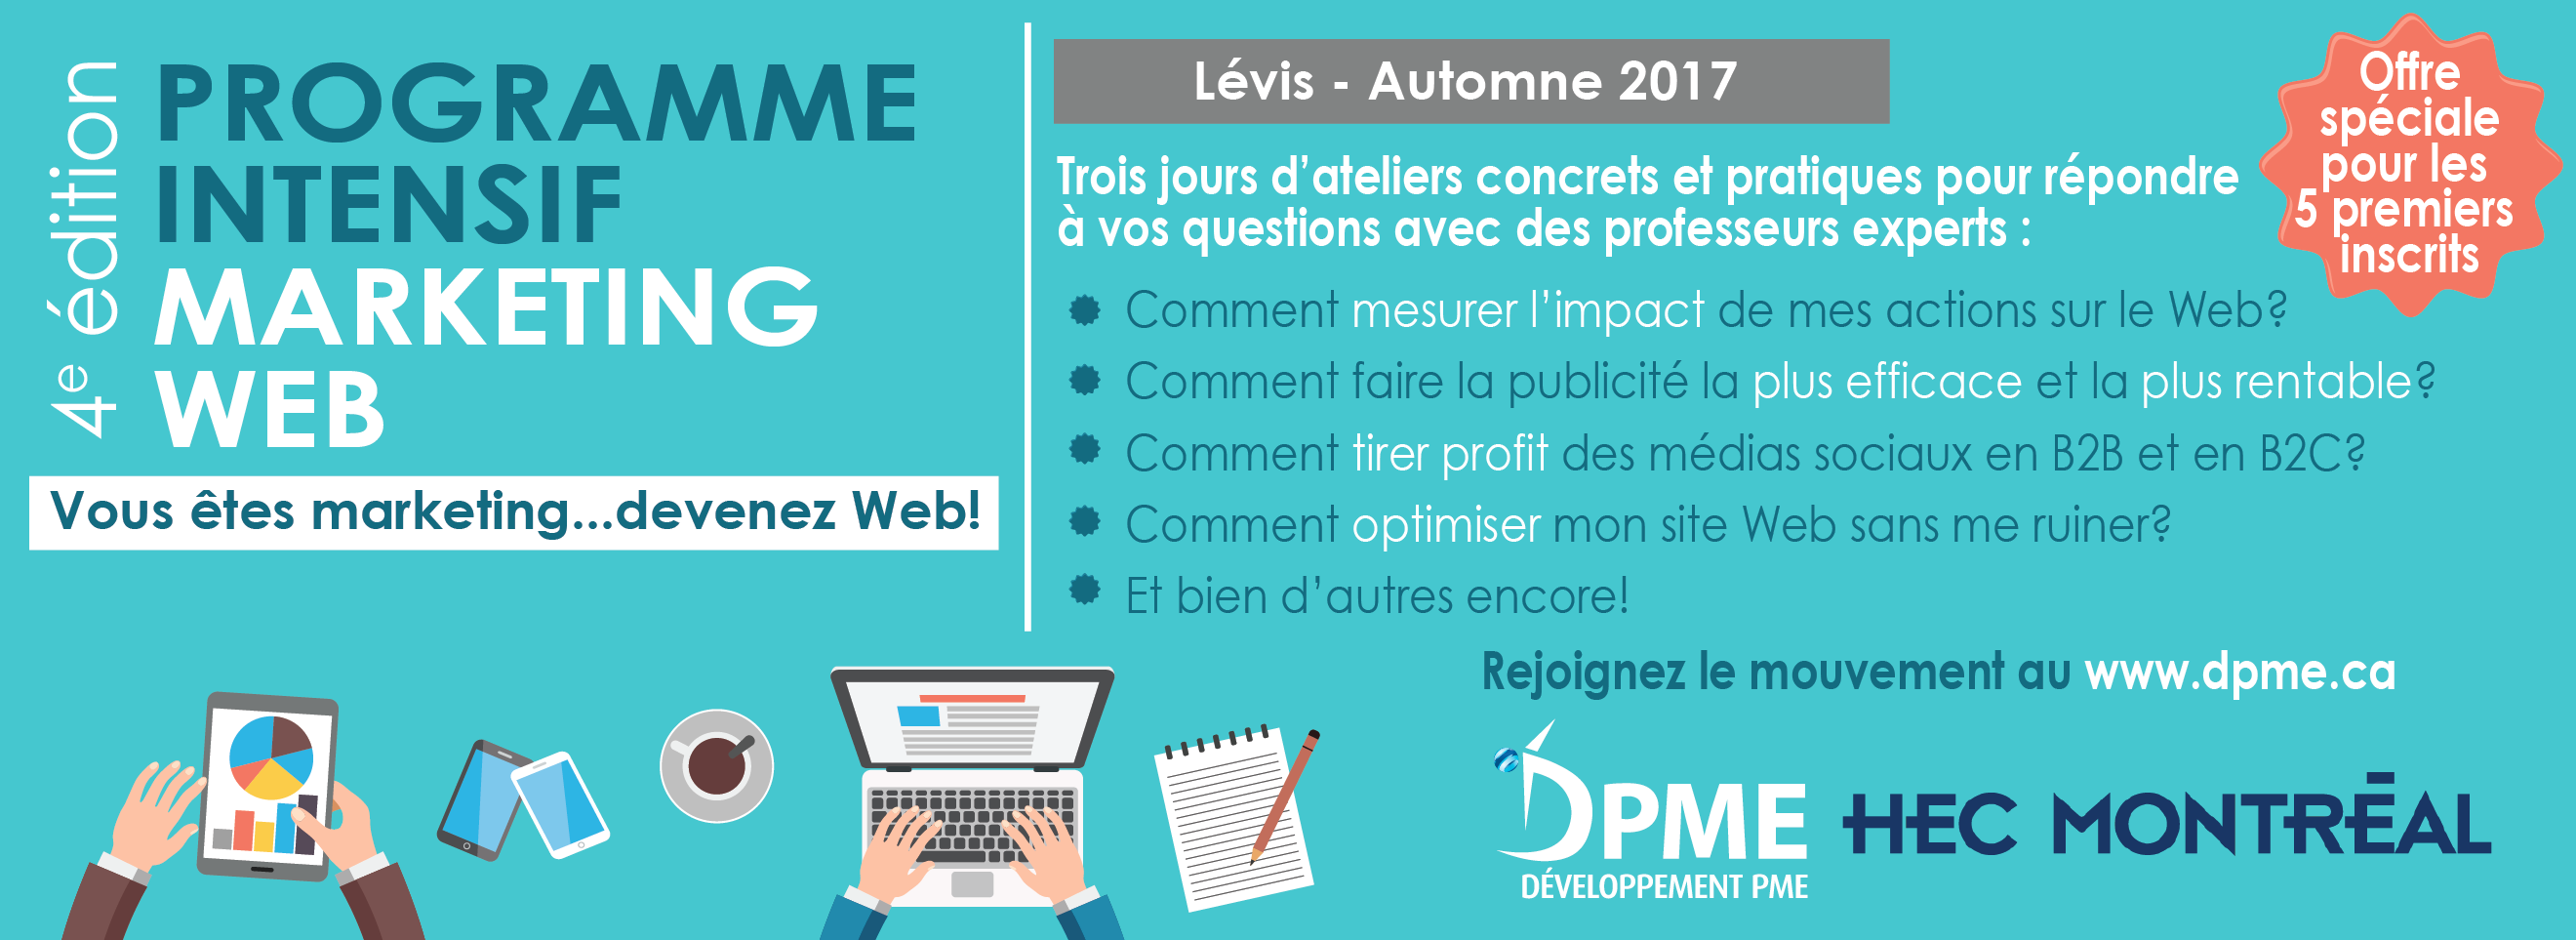 Programme intensif marketing Web offert par la DPME et HEC Montréal